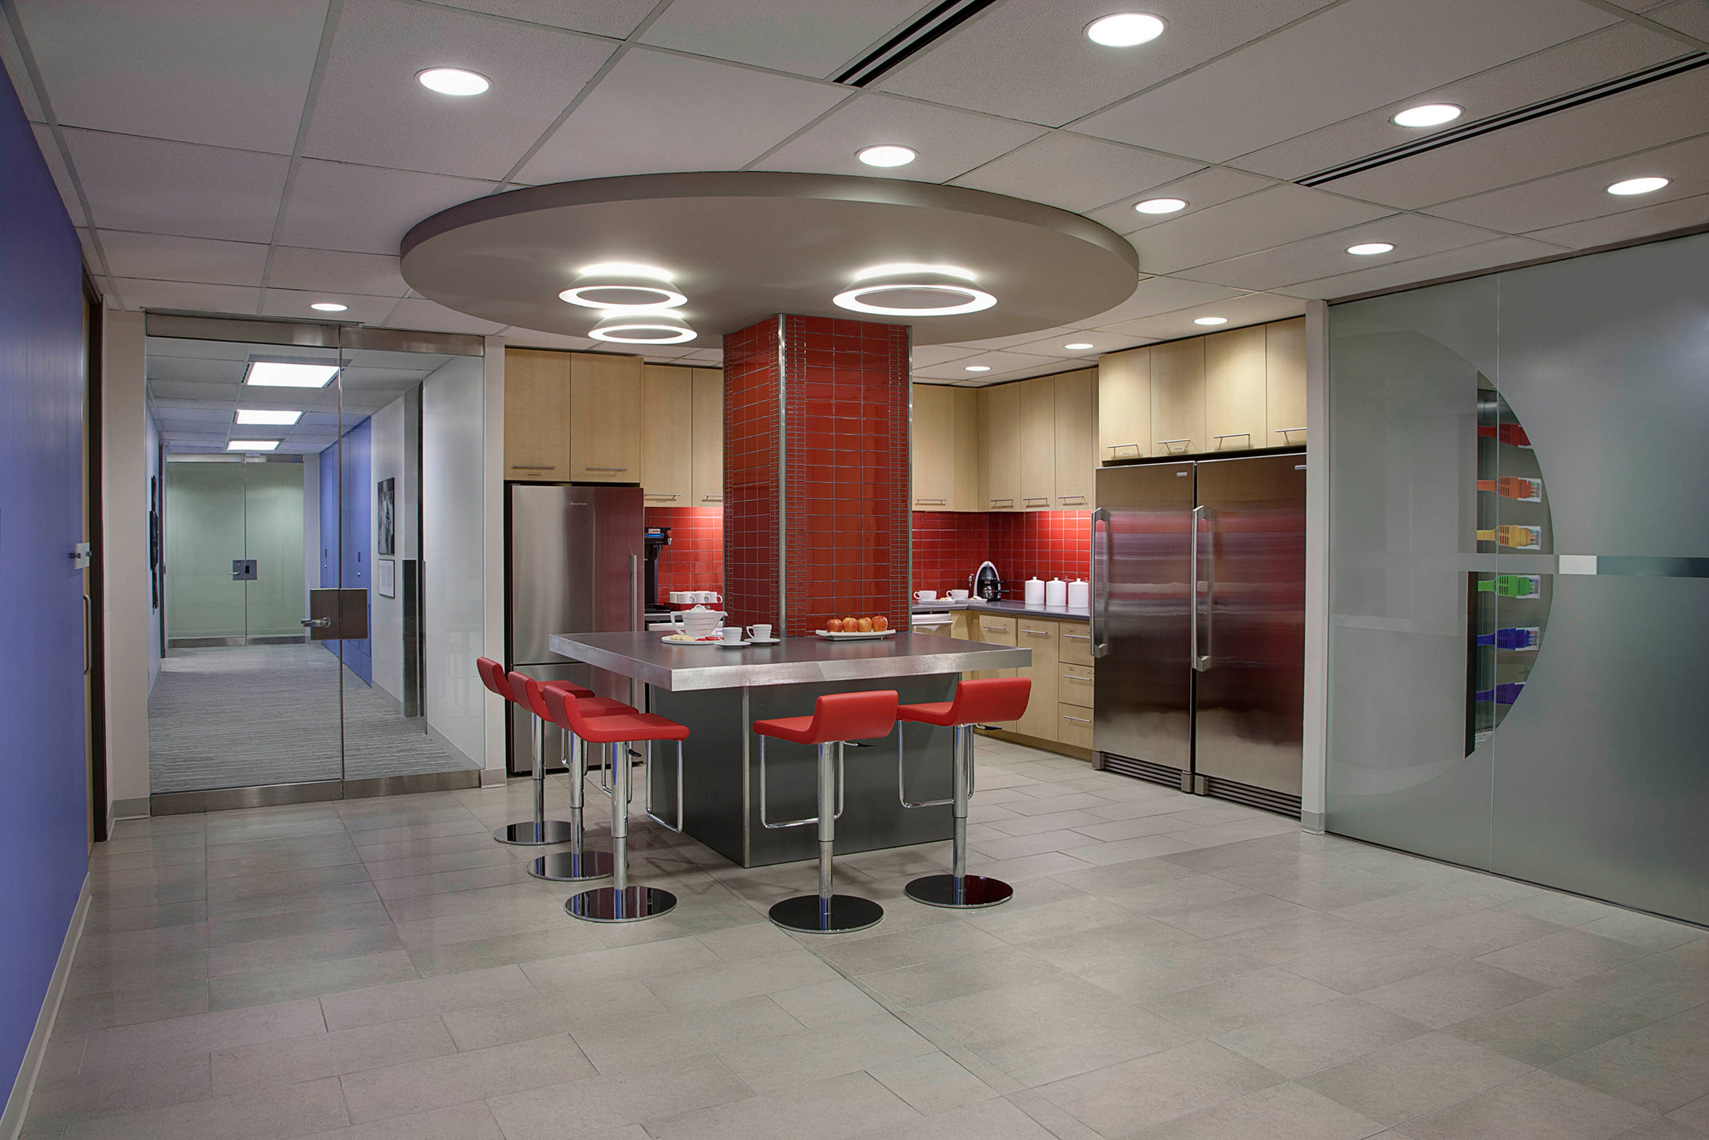 Corporate-Interior-Kitchen-plan-w